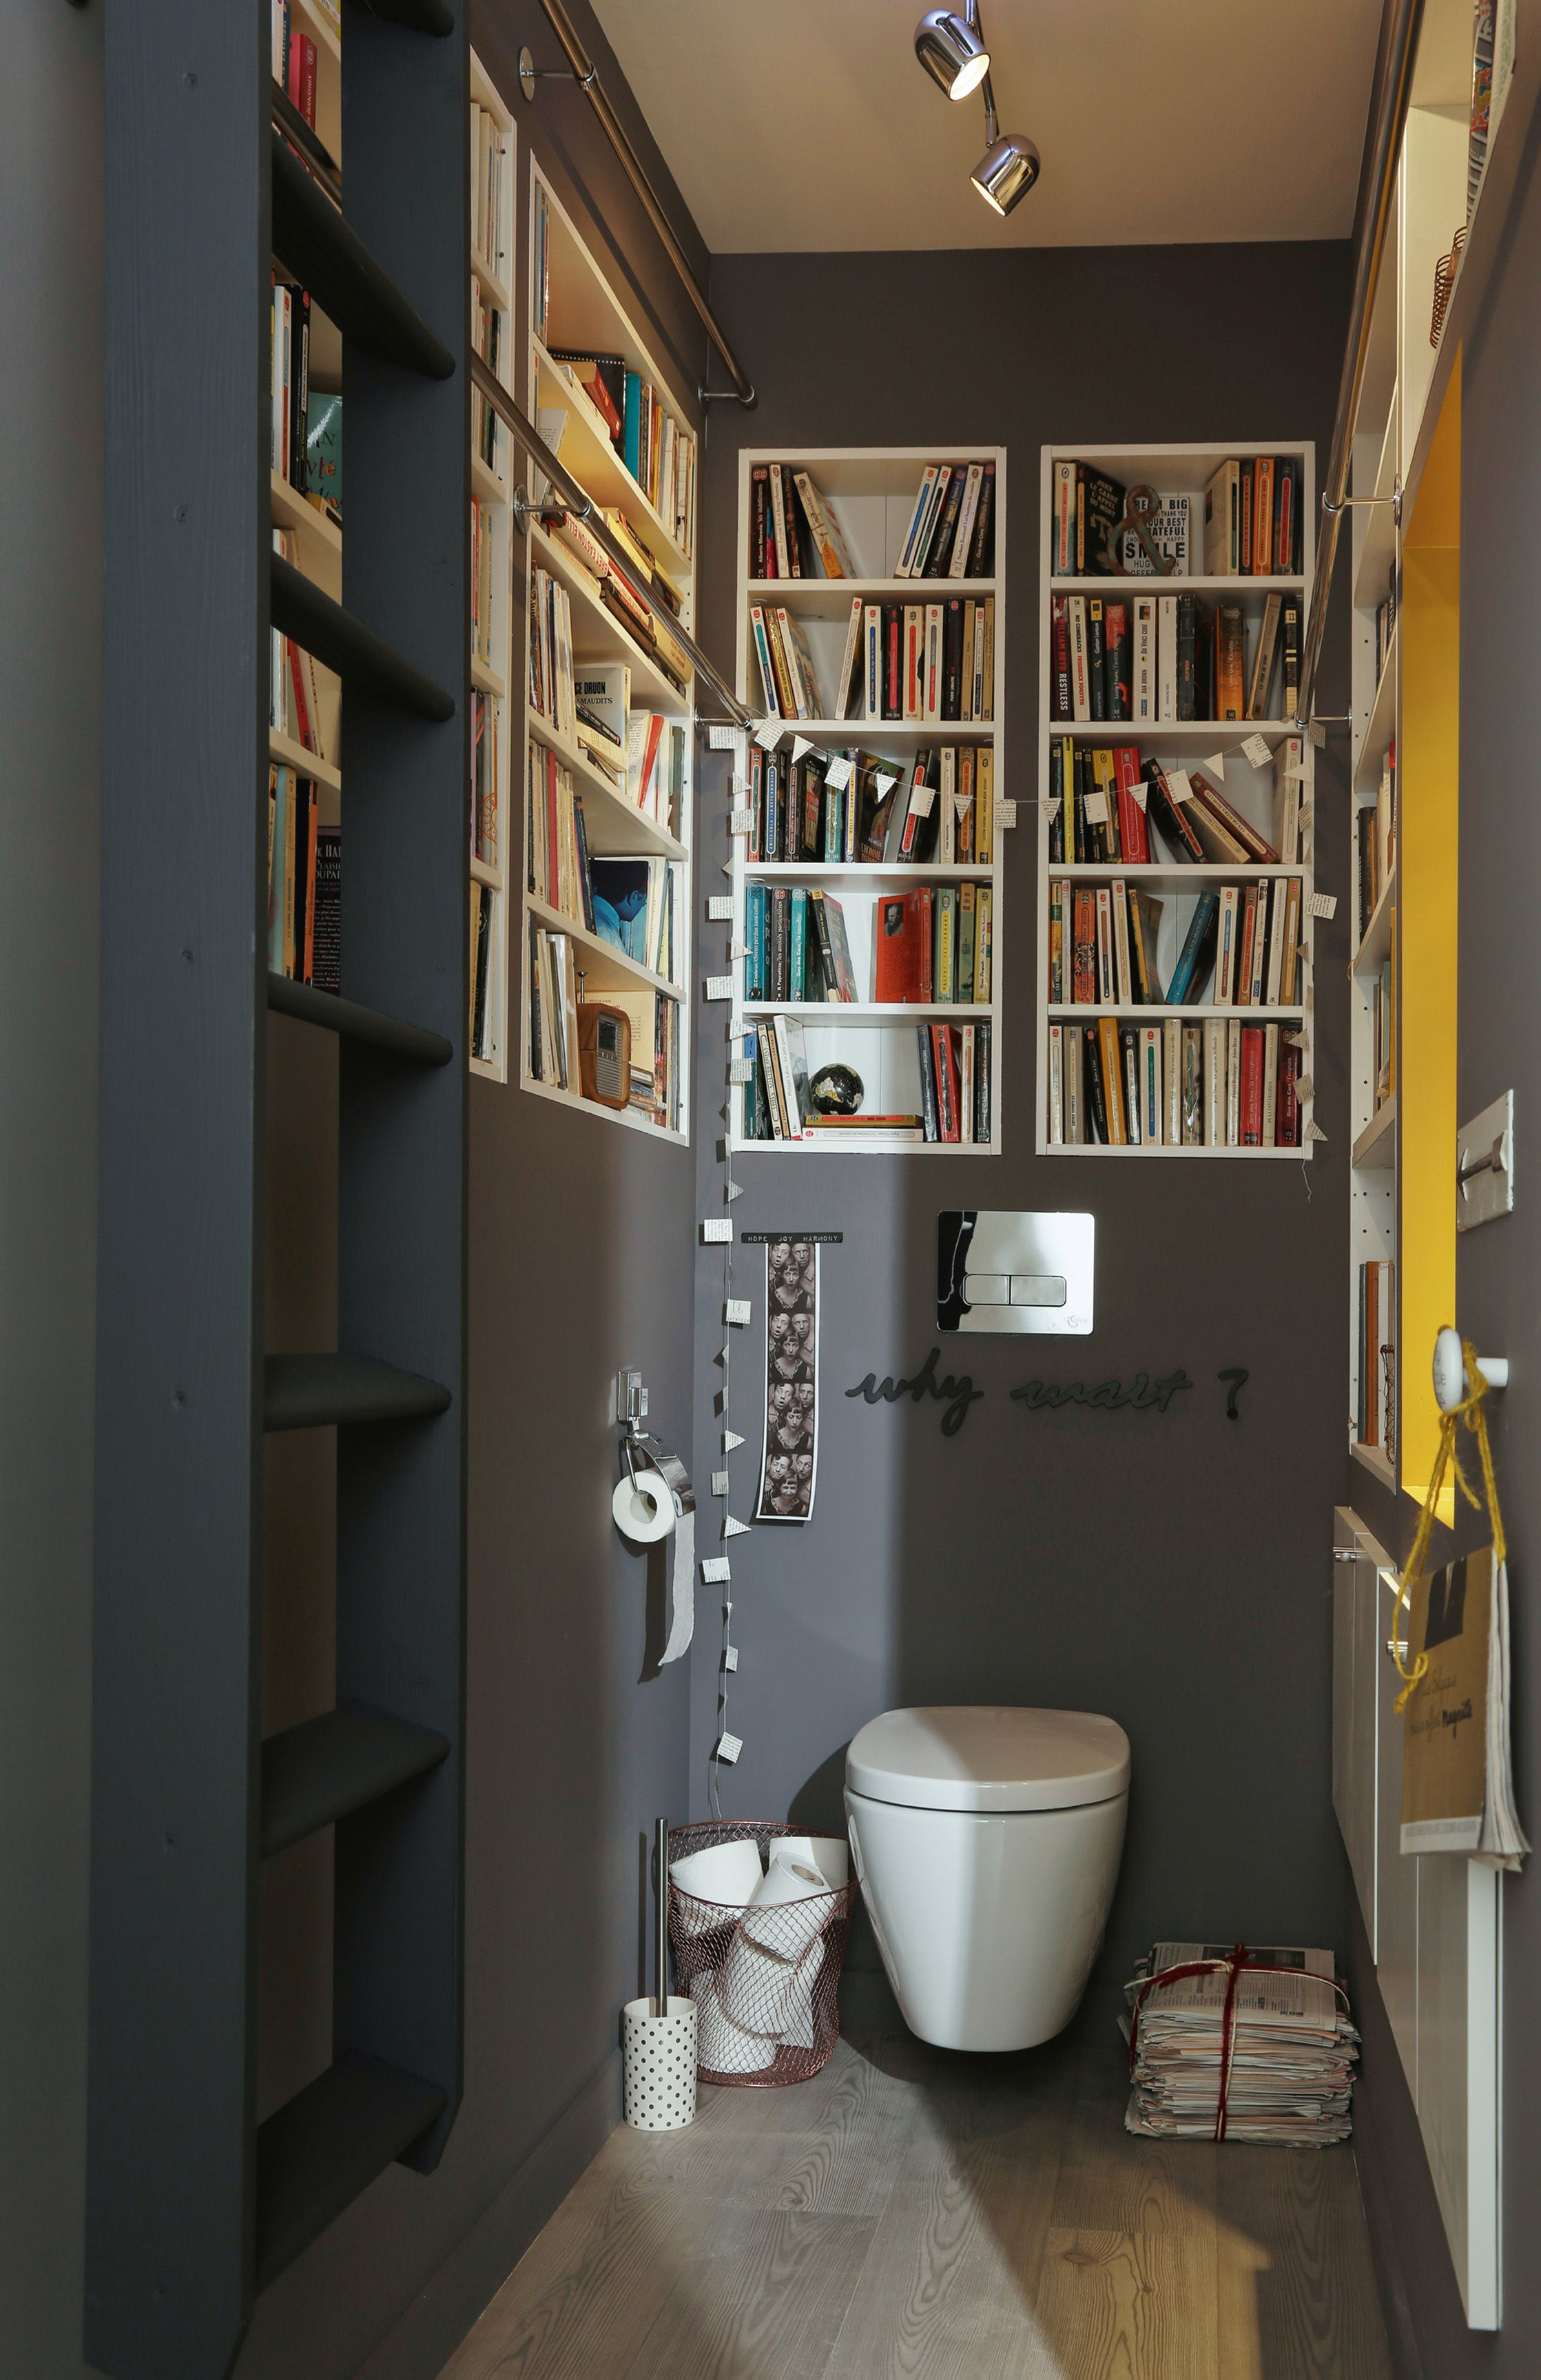 bathroom toilets library bookshelves unique bookshelves coin lecture ...